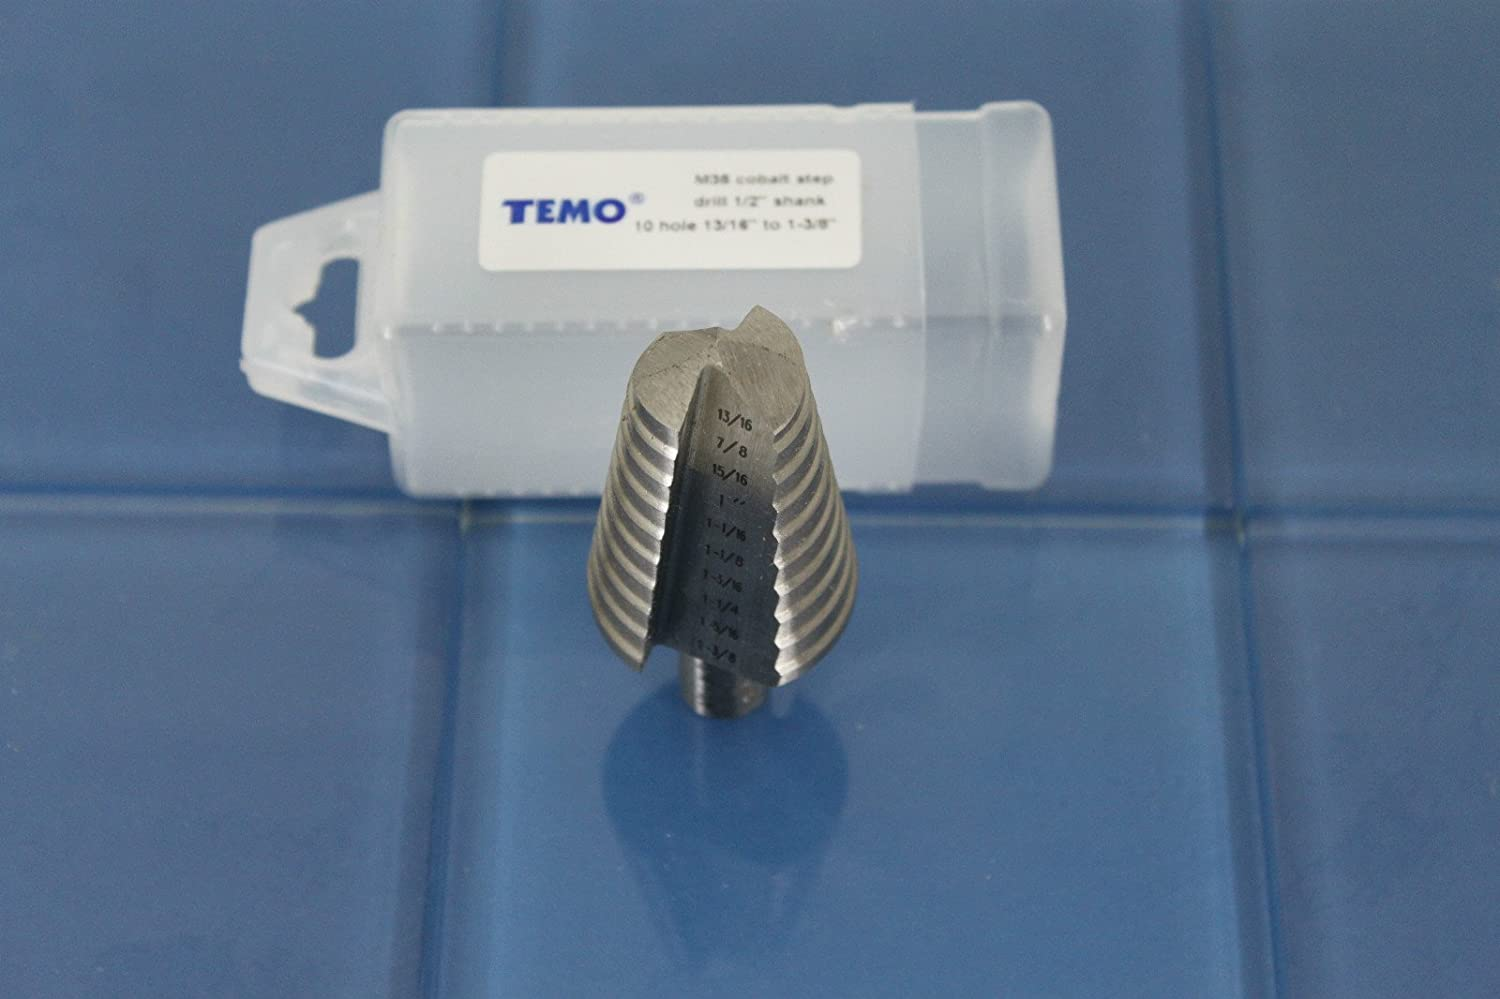 6.4mm 12.7mm 1//4 inch 6 Size from 3//16 inch 4.8mm TEMO M35 Cobalt Step Drill Double Flute to 1//2 inch Hex Shank